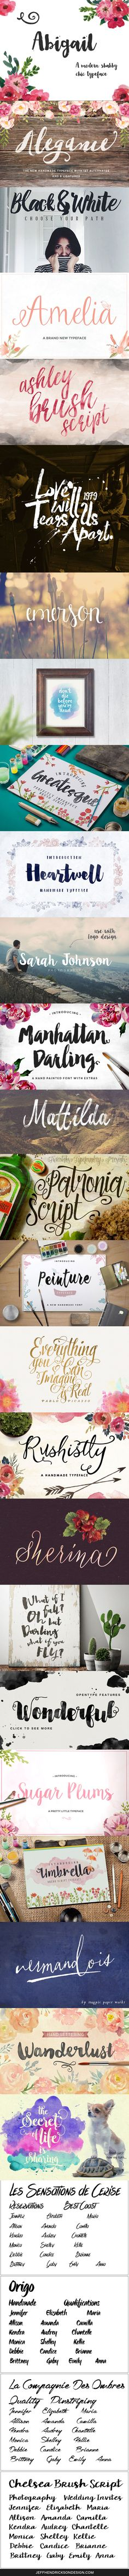 31 brush script fonts for identity, branding, logos, etc. Some are free.